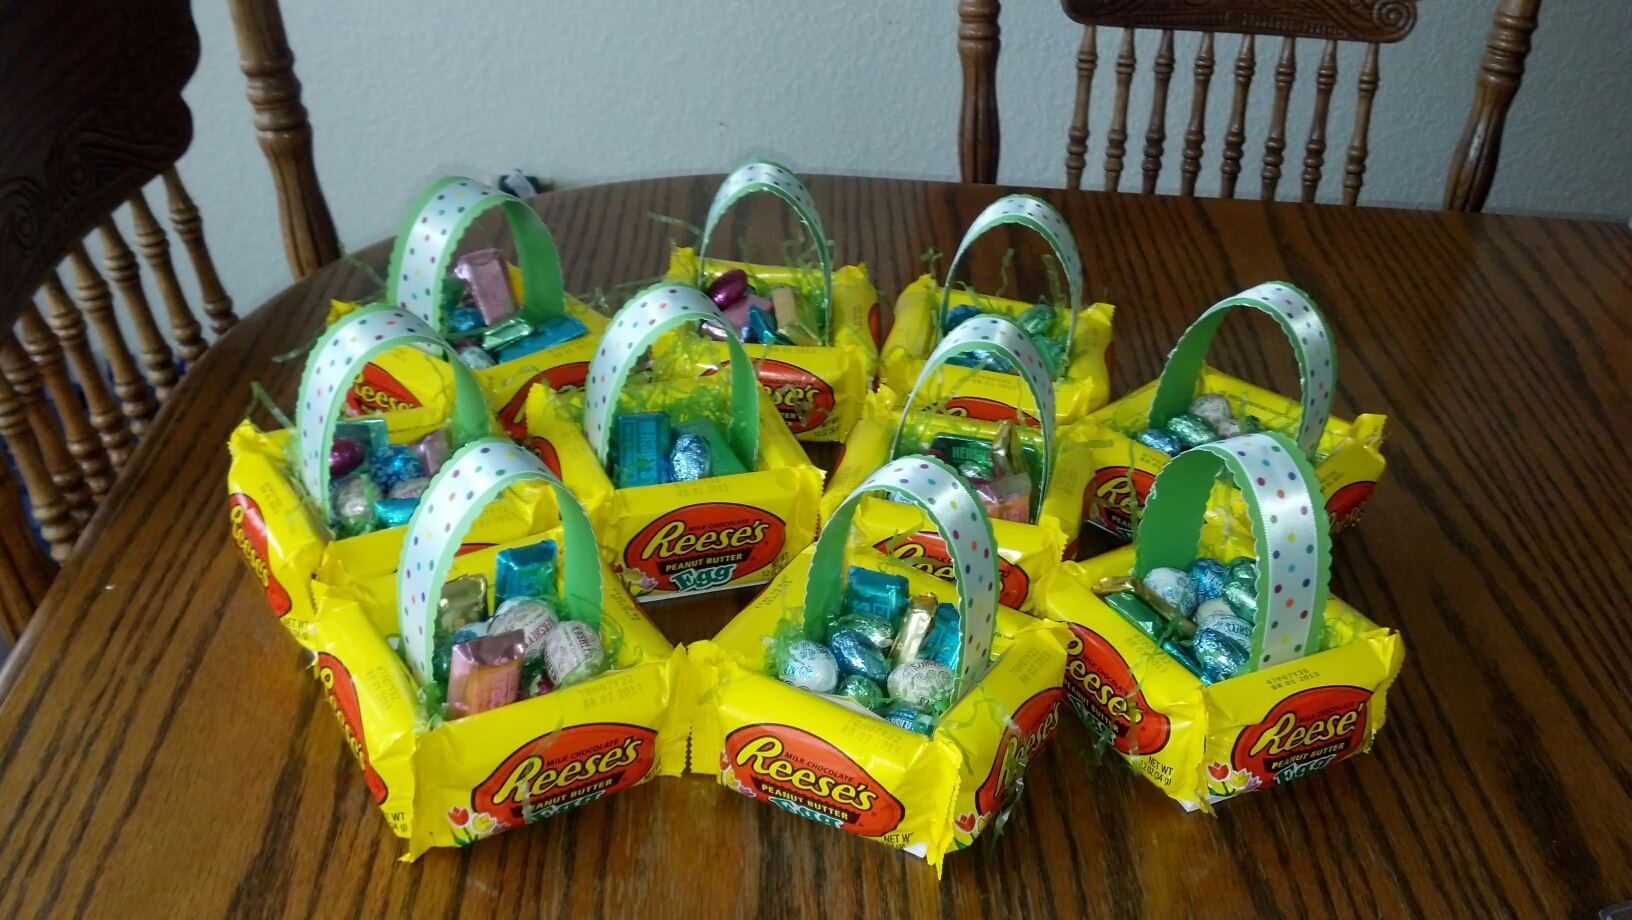 Aydons edible easter baskets for his class easter ideas aydons edible easter baskets for his class negle Choice Image